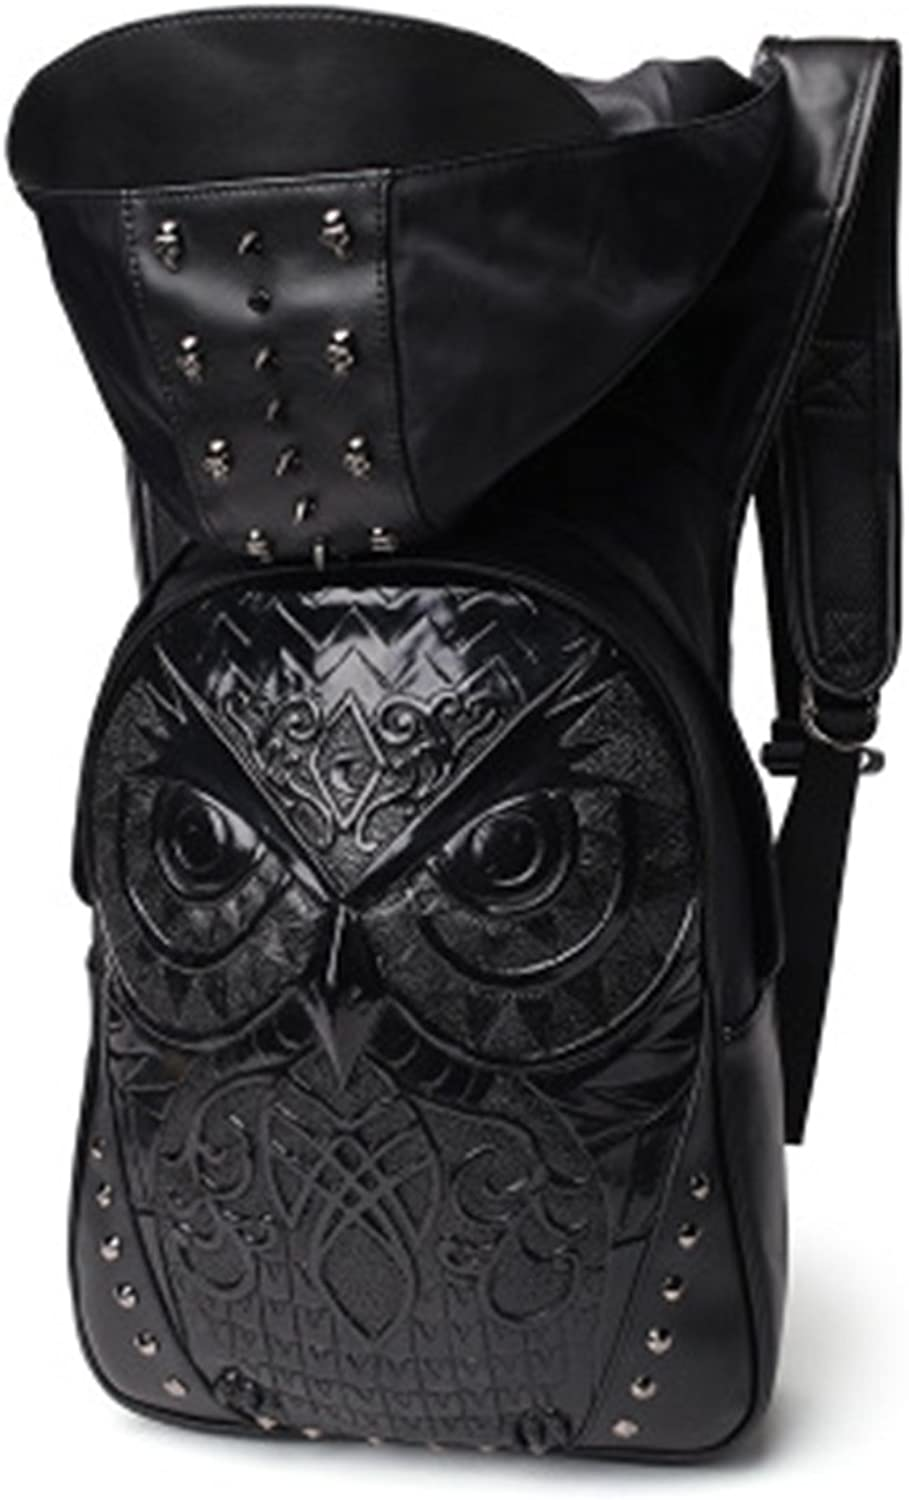 RYRYBH Unisex Backpack 3D Owl Computer Leather Backpack Leisure Outdoor Travel Bag Creative Hat PU Backpack Rivet Design Personality Bag backpack (color   Black, Size   Onesize)